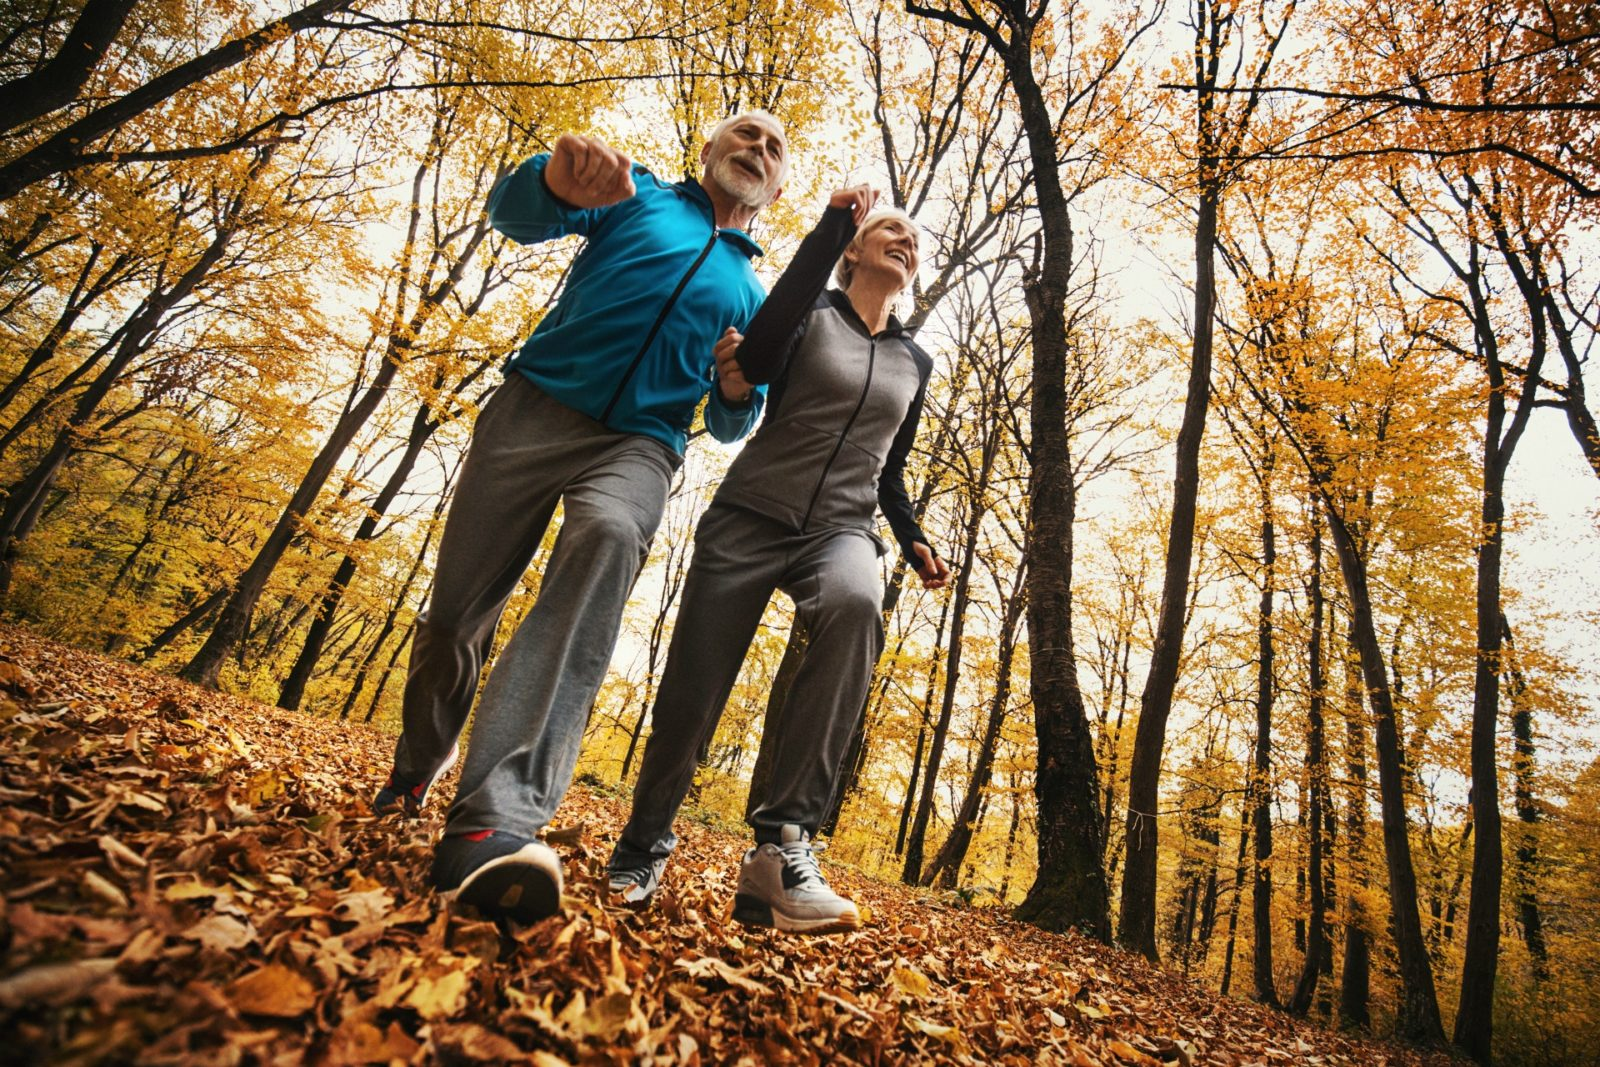 Brisk walking is an example of a good exercise for bone health.